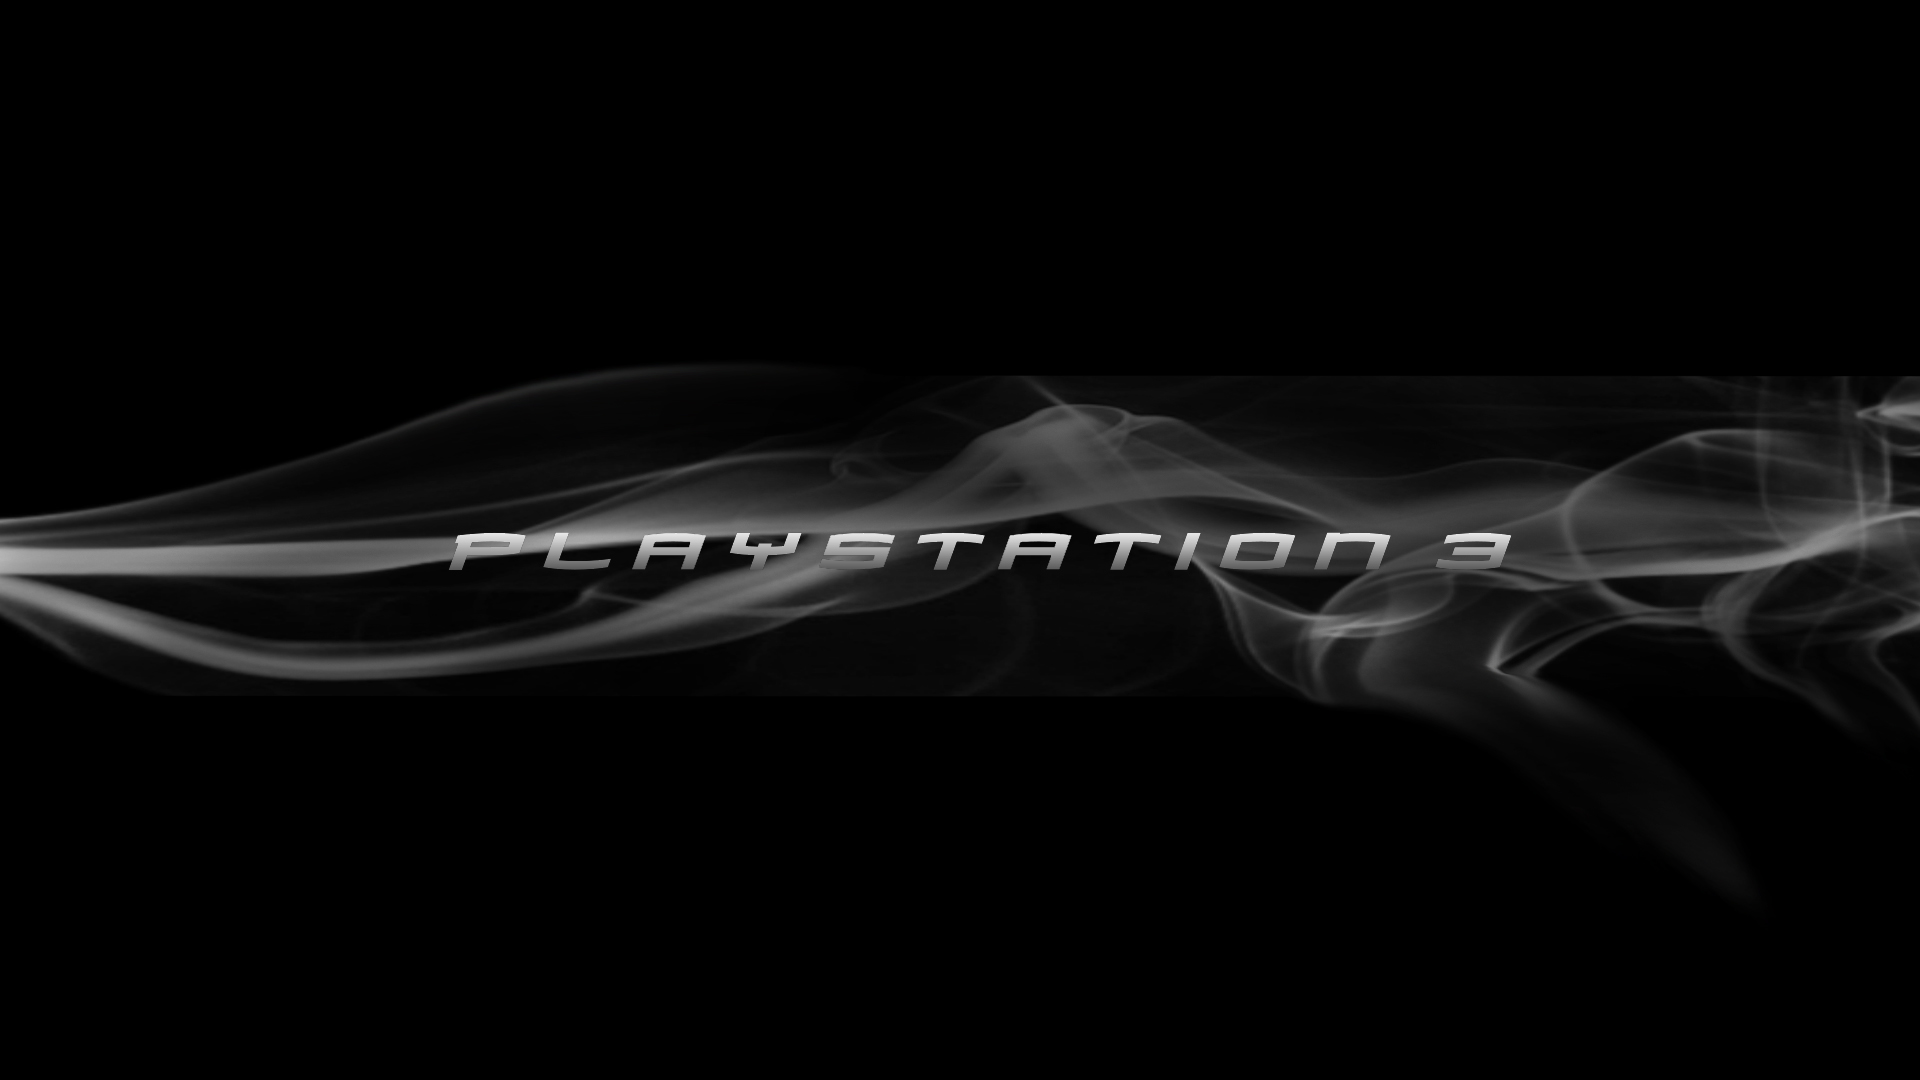 Playstation 3 Wallpaper · Playstation 3 Wallpaper ...